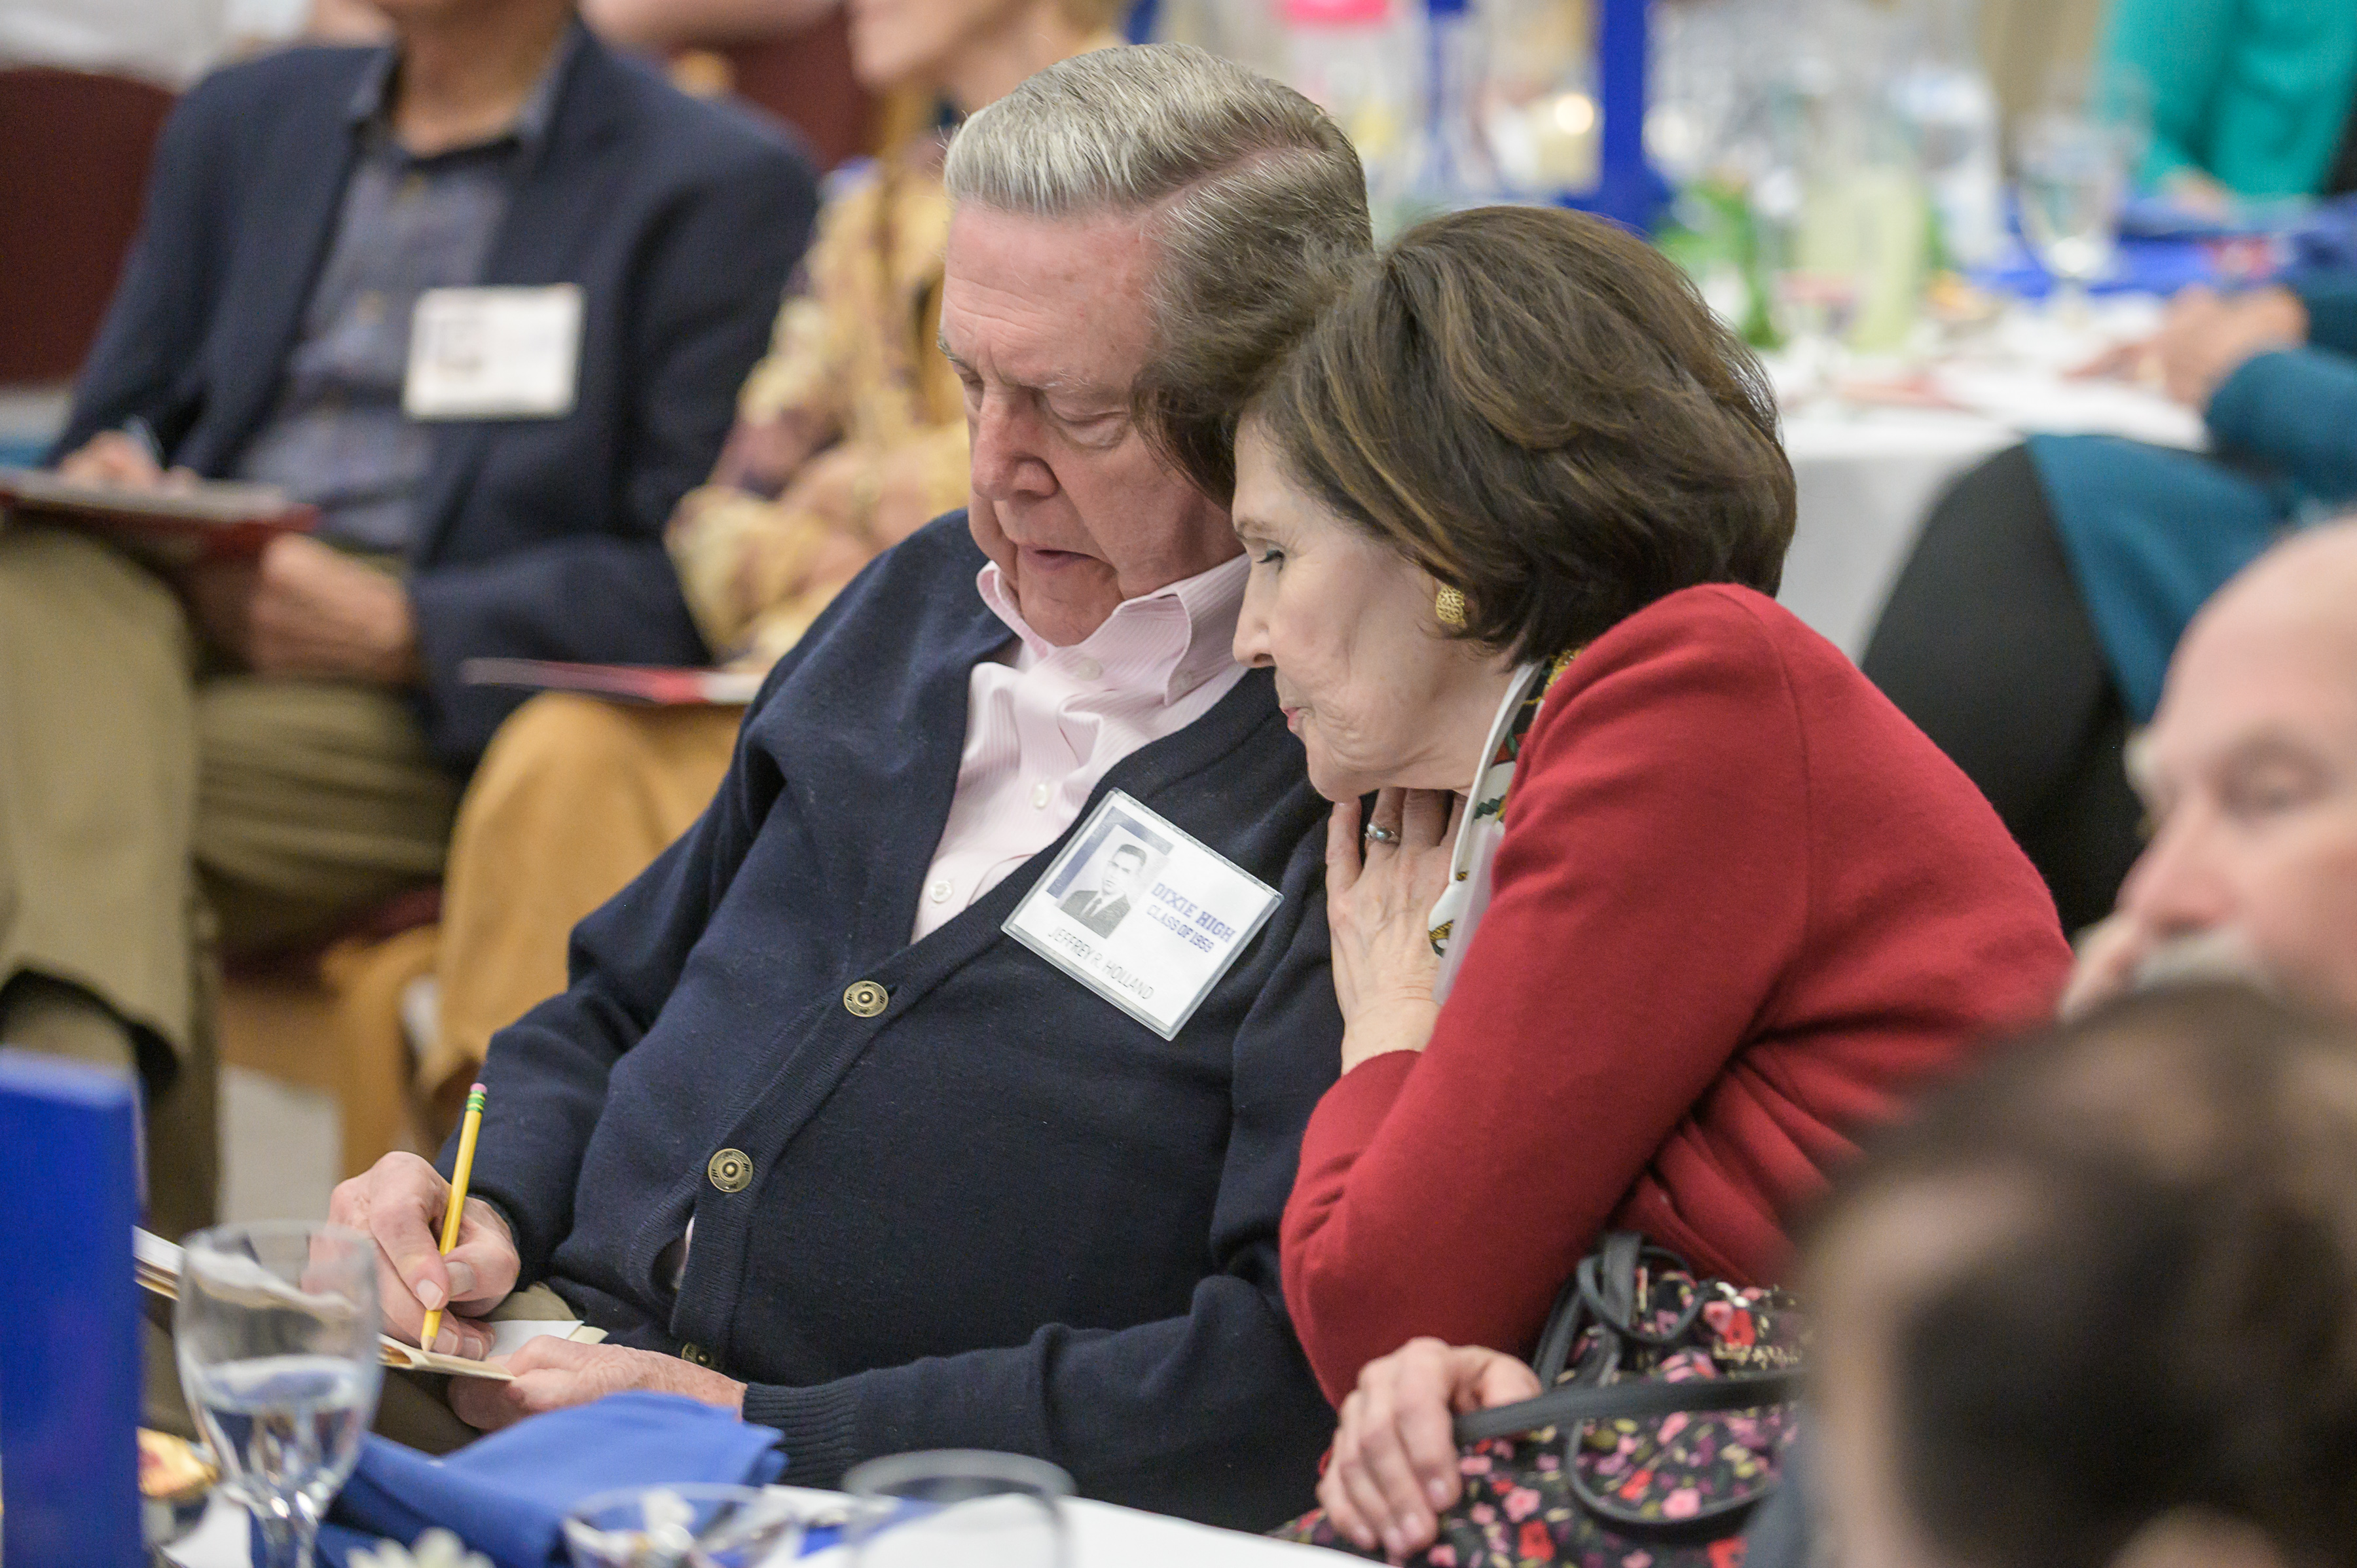 Patricia Holland, right, wife of Elder Jeffrey R. Holland, a member of the Quorum of the Twelve Apostles of The Church of Jesus Christ of Latter-day Saints, leans in to help with a musical quiz at the 60th reunion for the Dixie High School class of 1959 on Thursday, Oct. 24, 2019, in St. George.